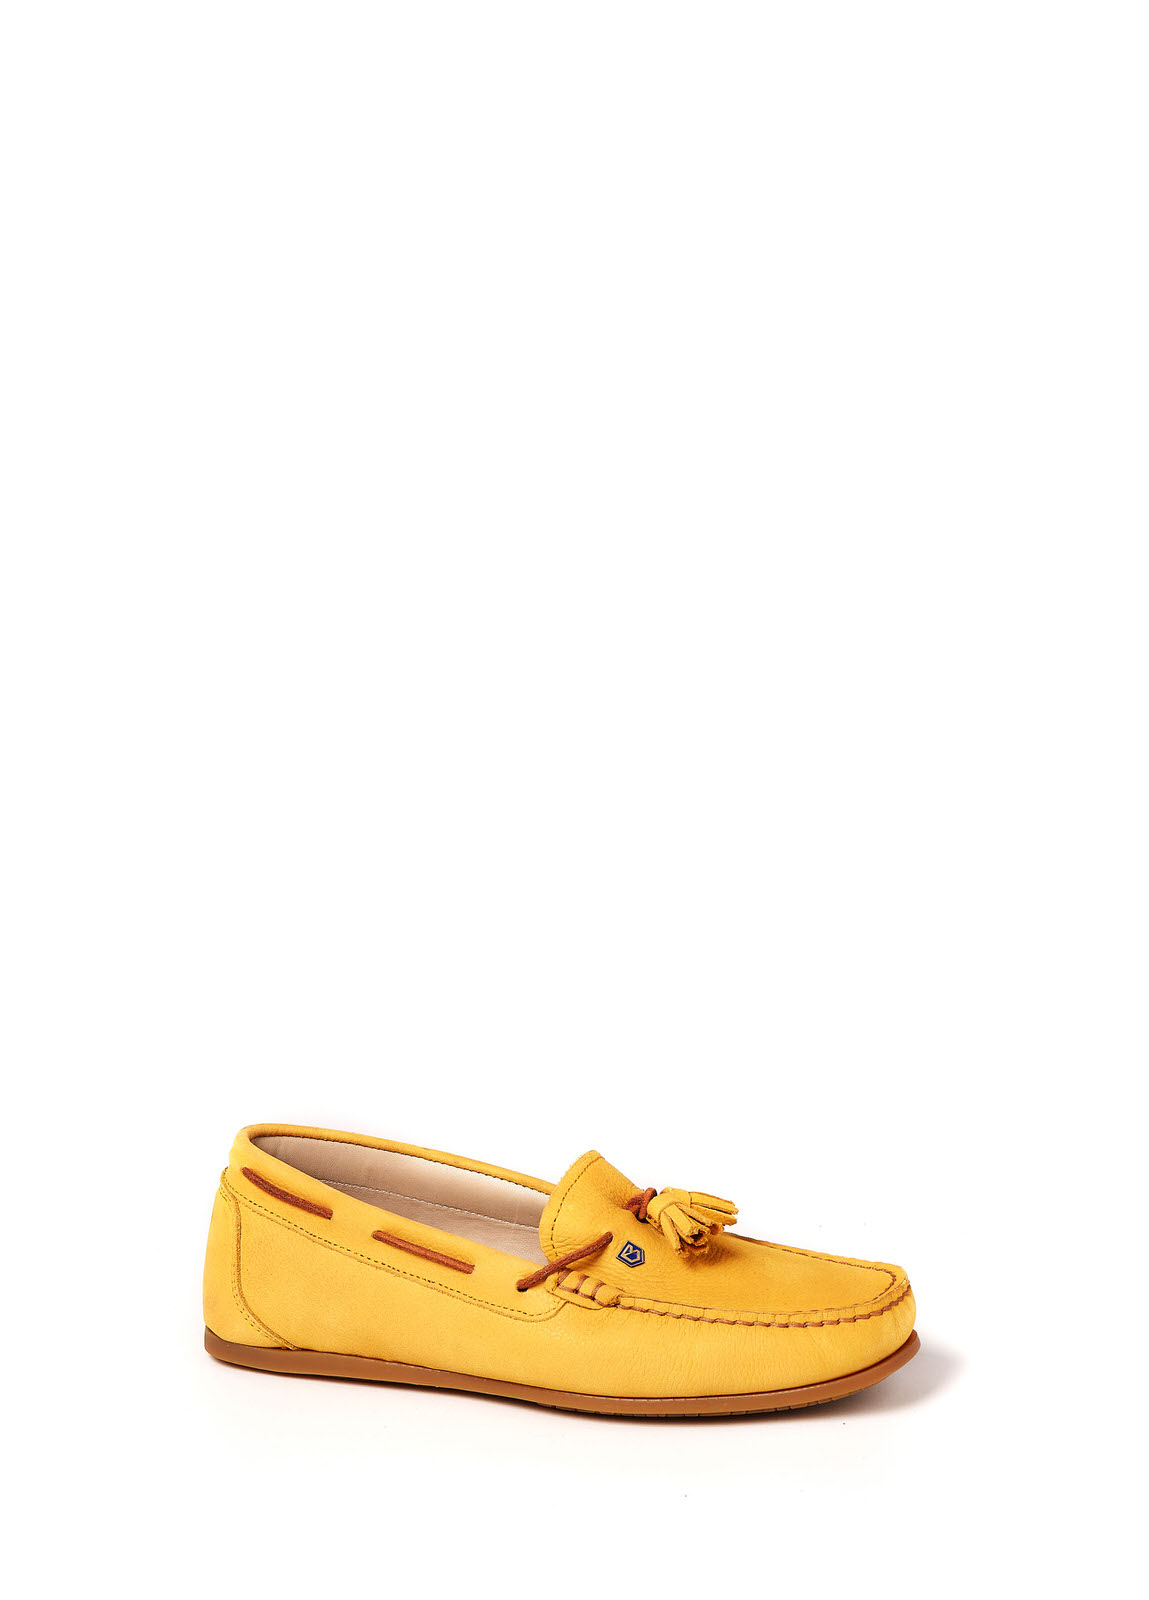 Dubarry_Jamaica Loafer - Sunflower_Image_1